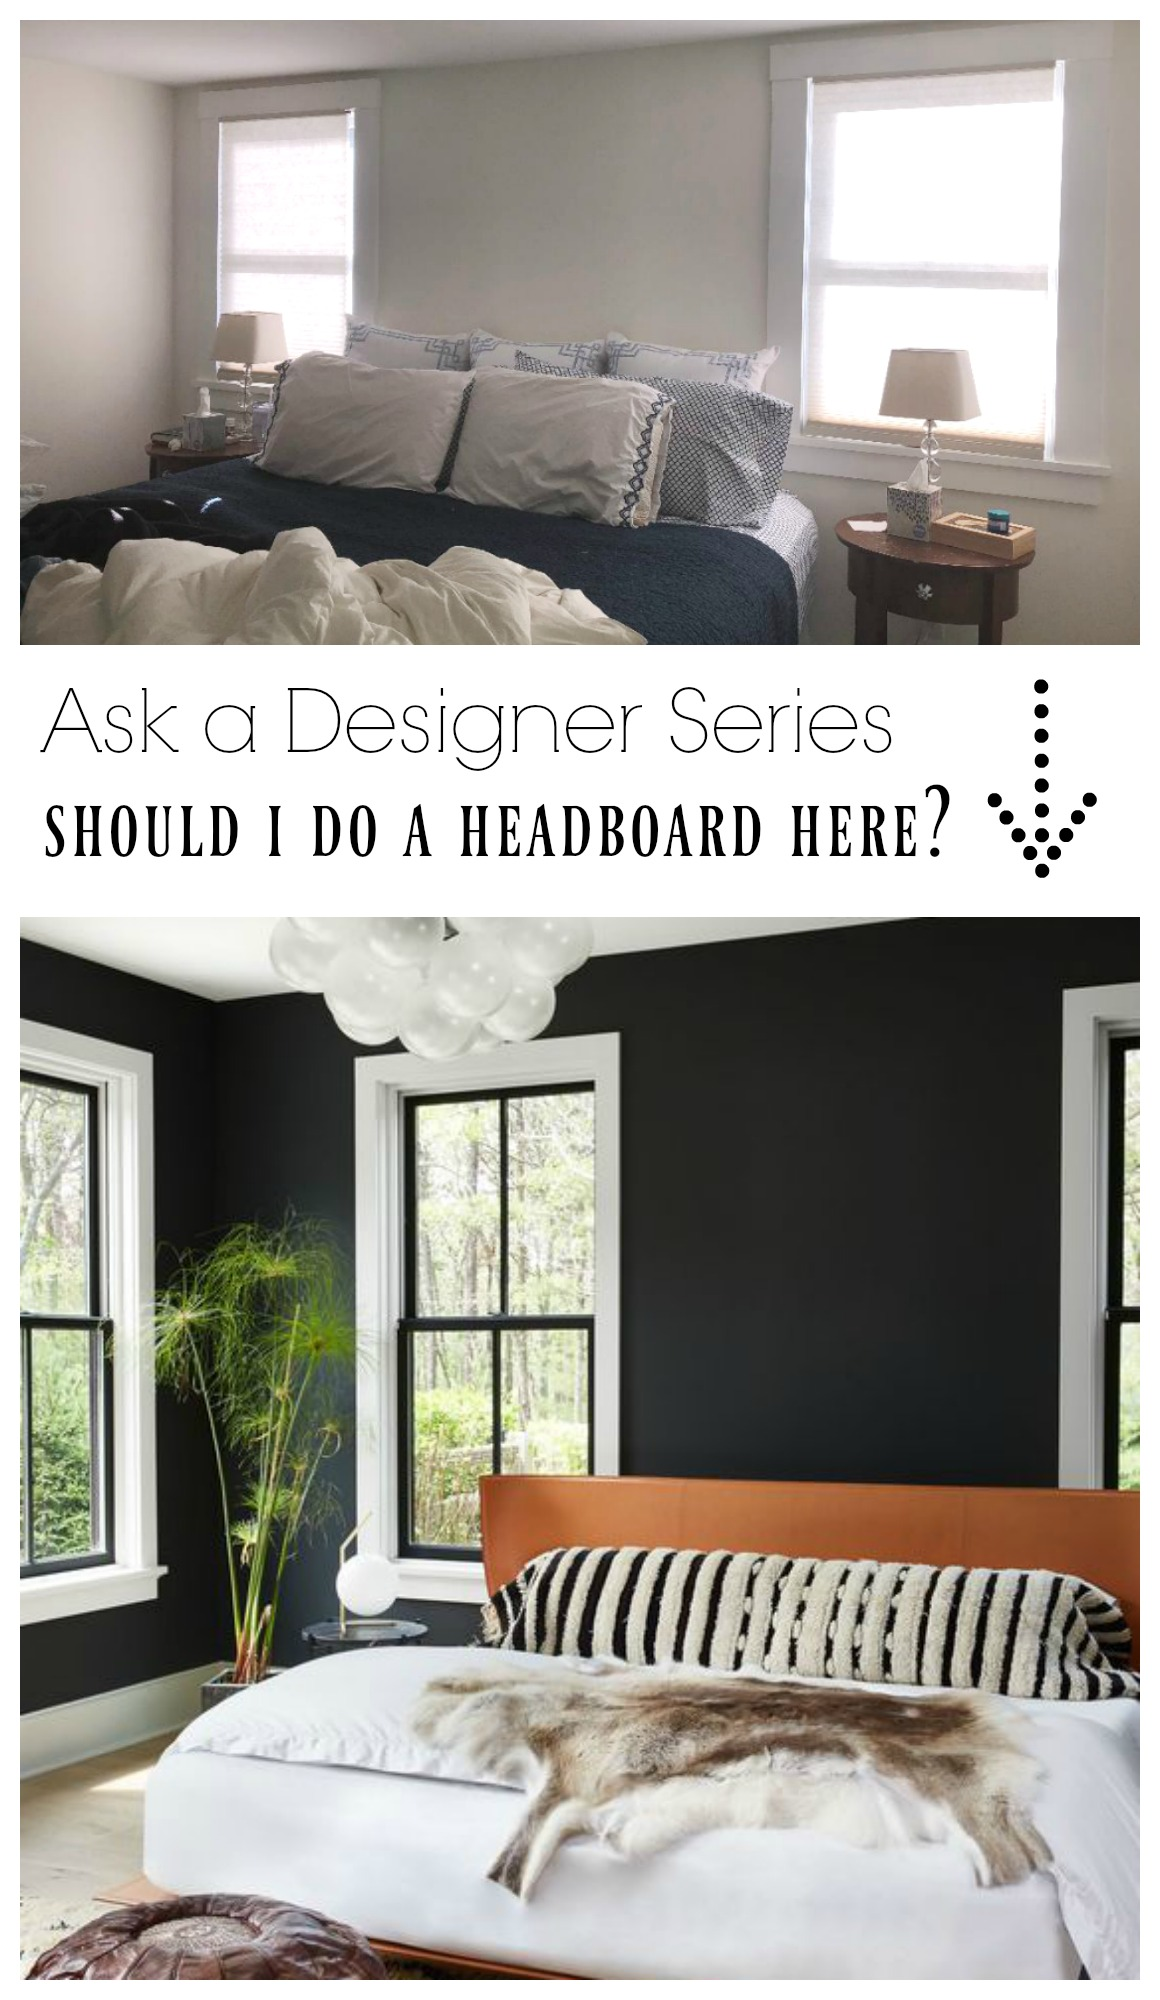 Ask a Designer Series- Should I do a headbaord between these two Windows?